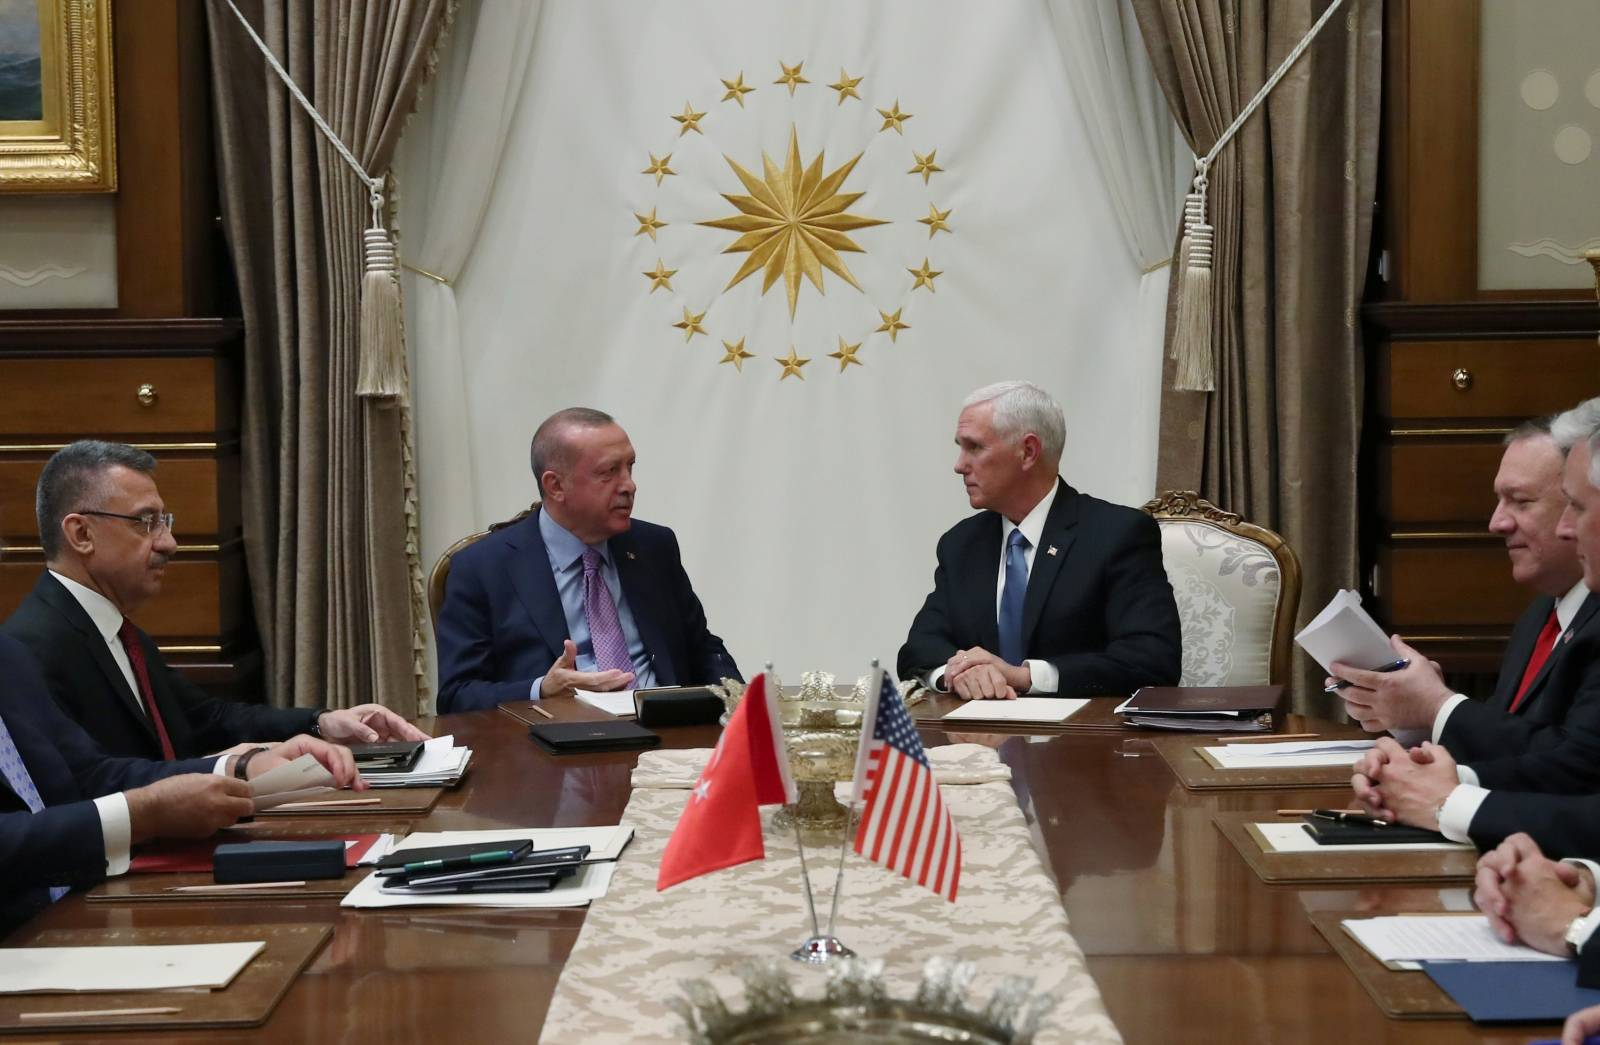 Turkish President Erdogan meets with U.S. Vice President Pence at the Presidential Palace in Ankara